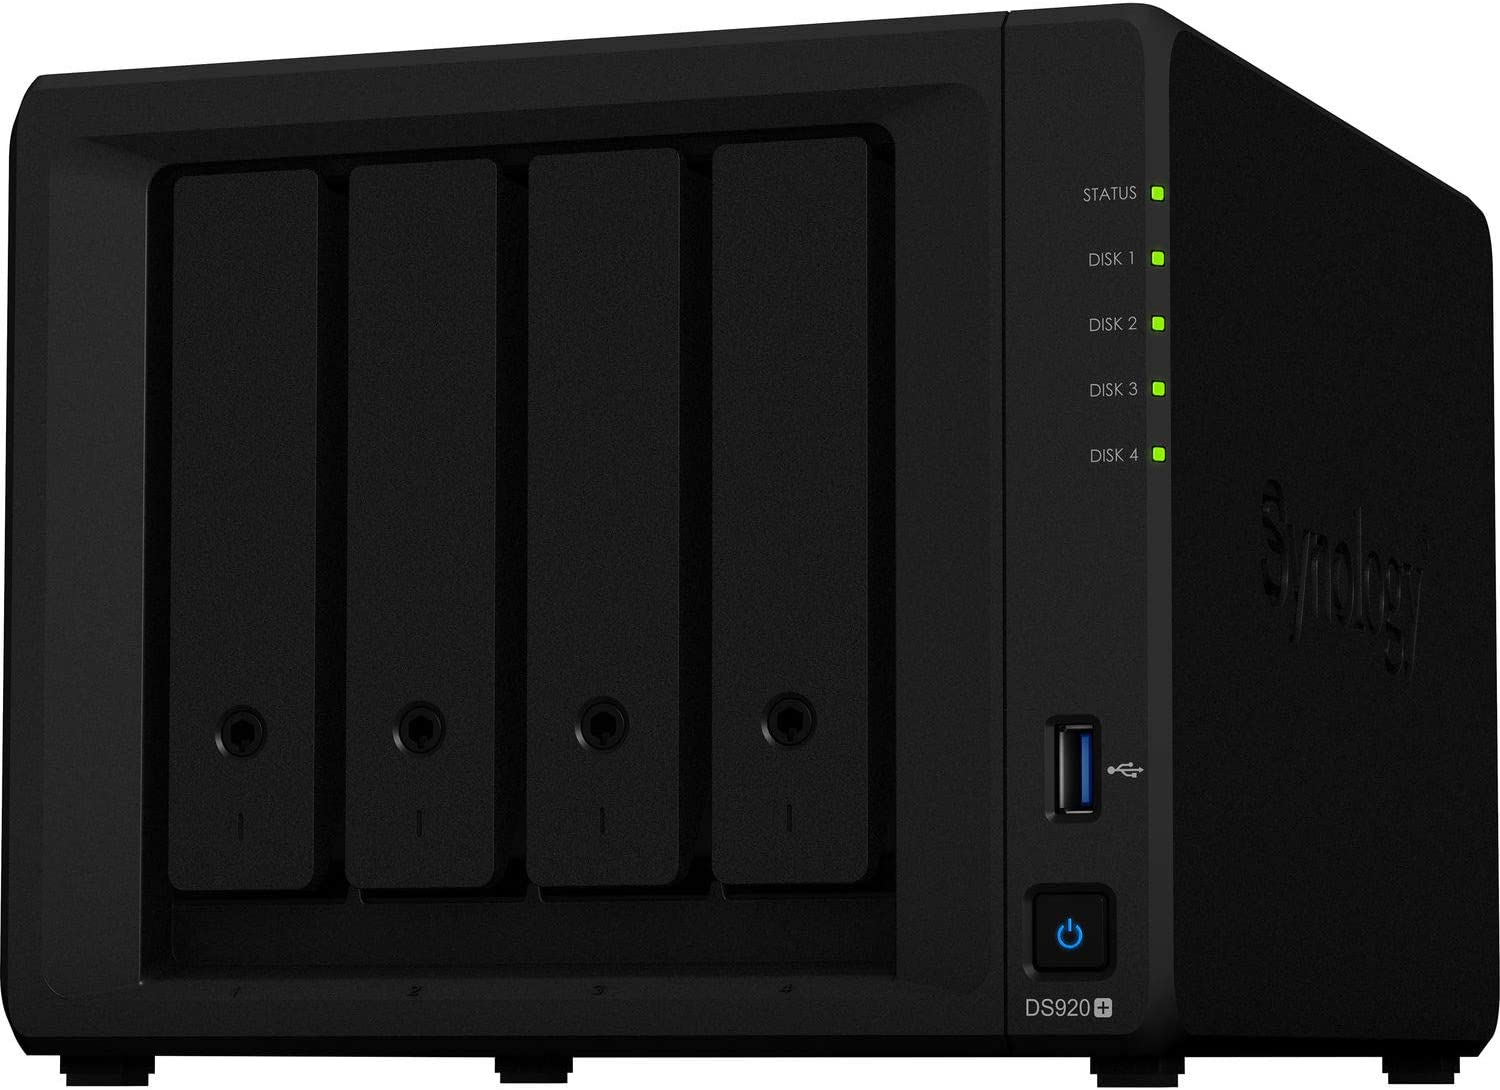 4 x 4TB Synology DS920 of Western Digital RED NAS Drives Fully Assembled and Tested by CustomTechSales DiskStation Bundle with 8GB RAM and 16TB